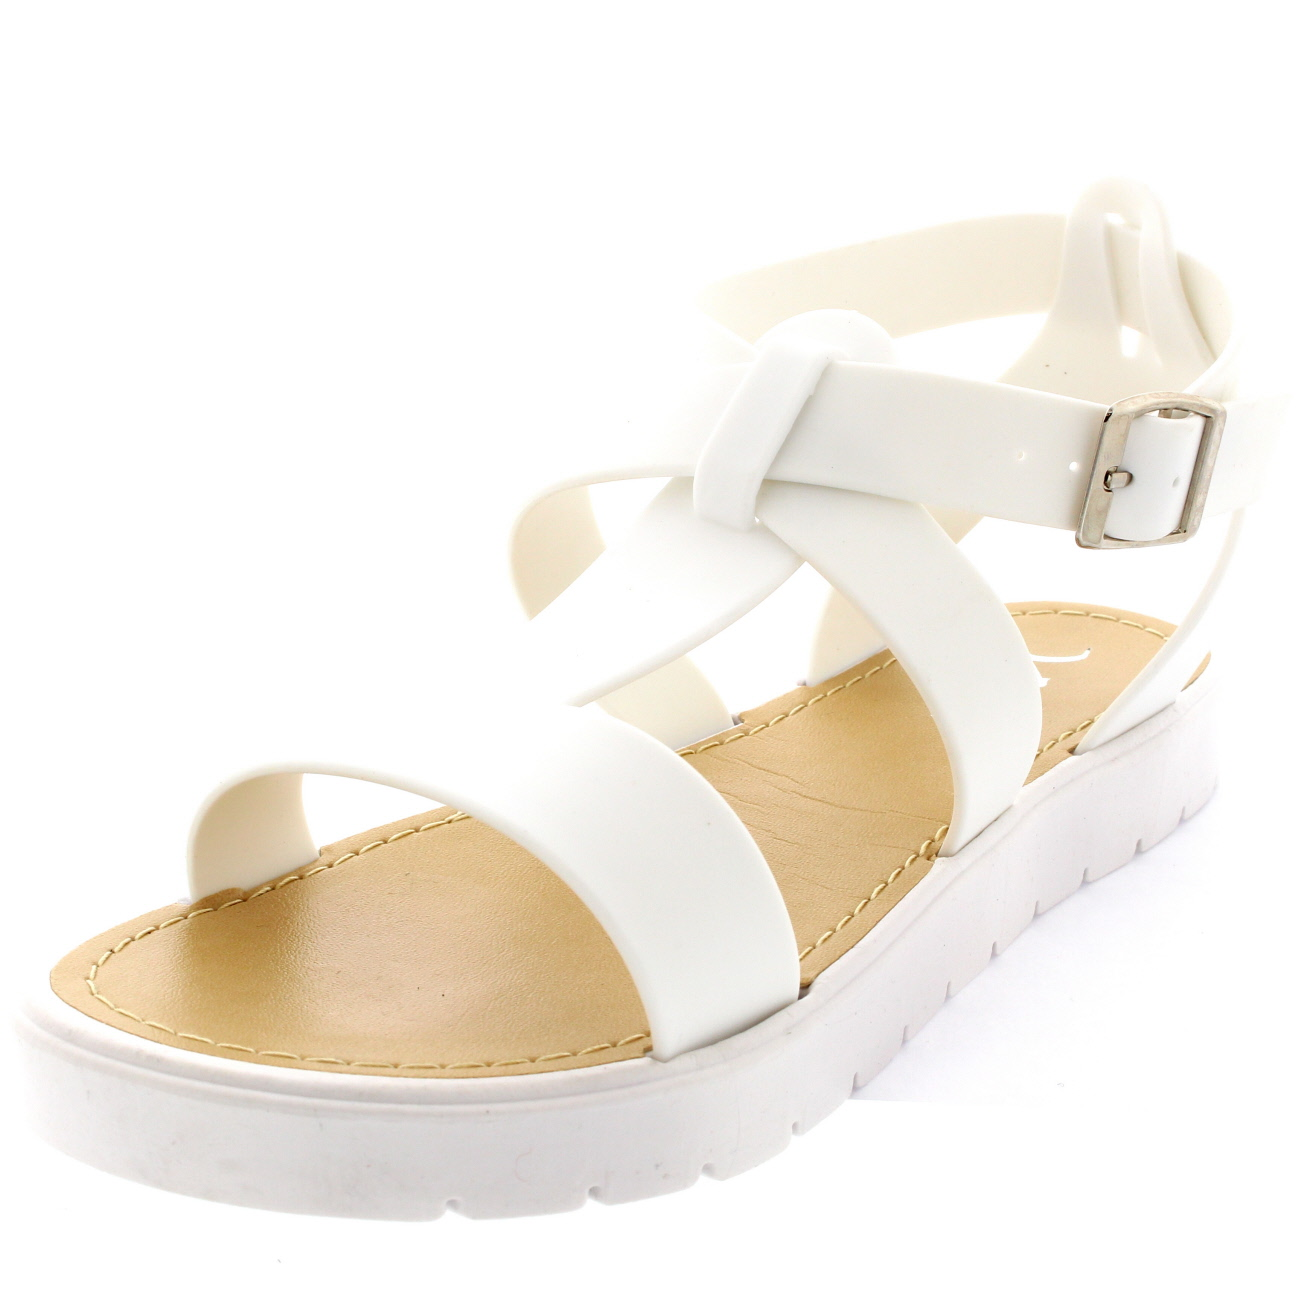 fd797f5879cb Womens Open Toe Shoes Cleated Sole White Platform T-Bar Jelly ...